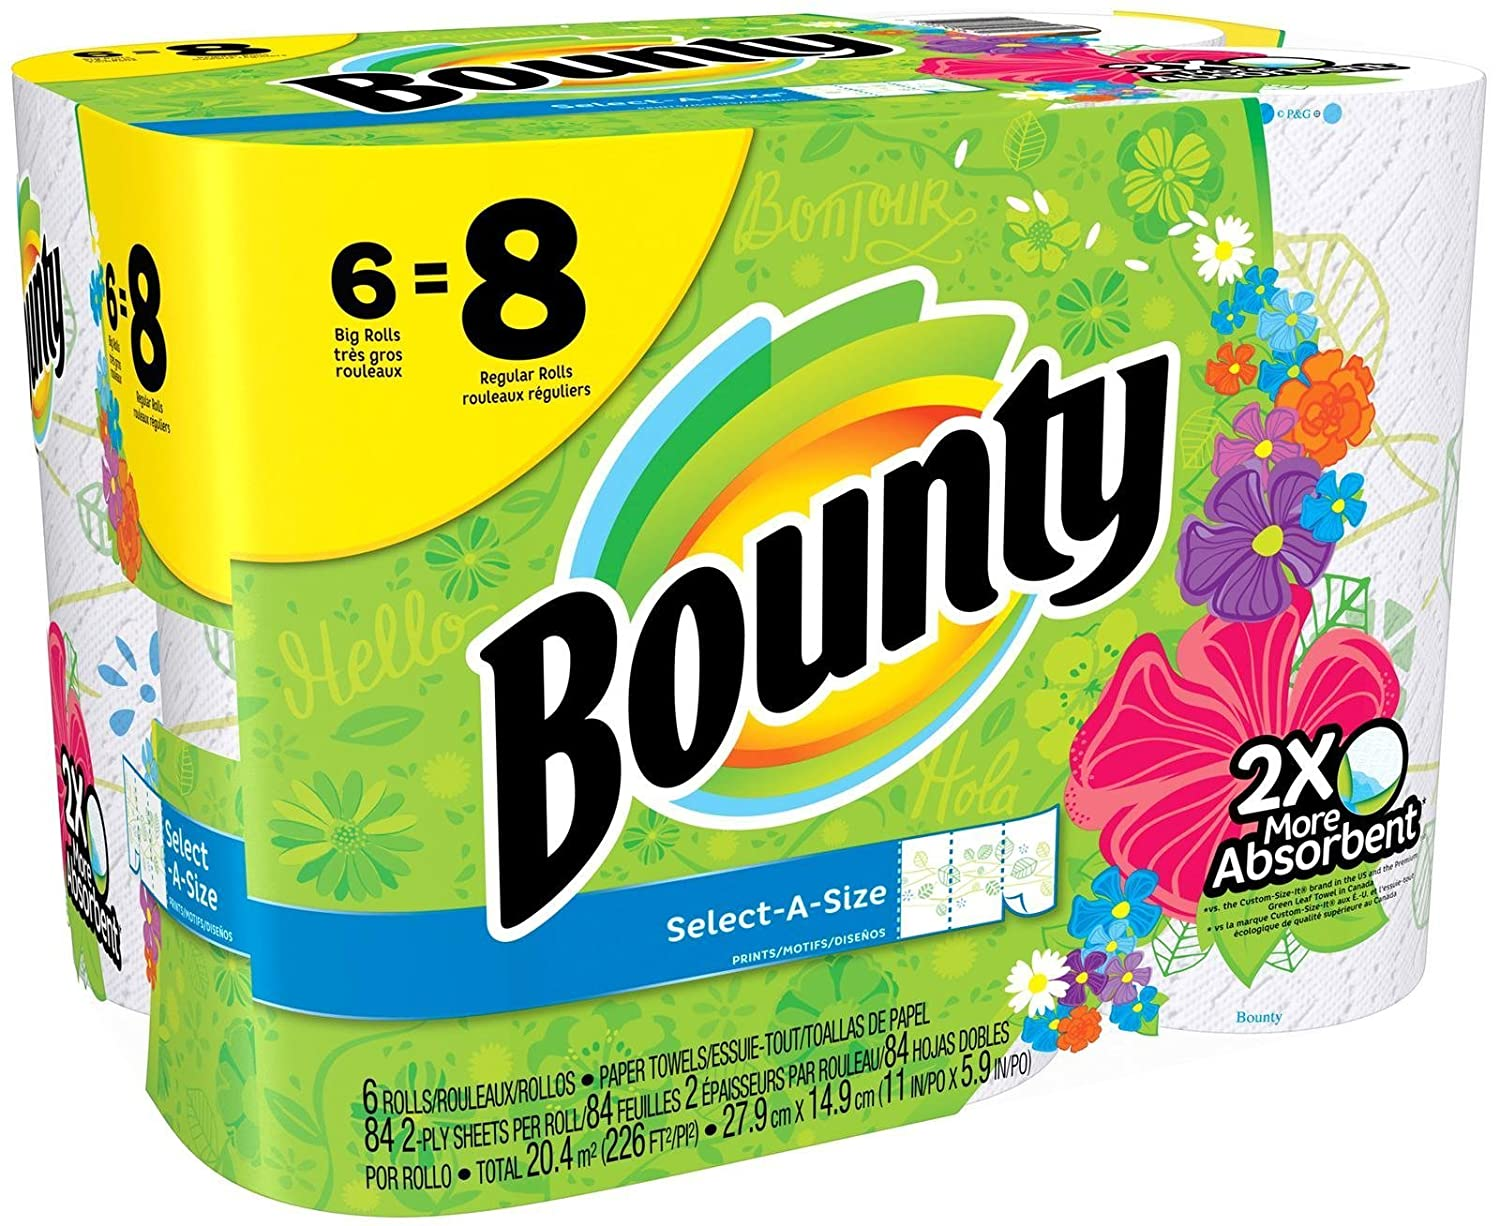 Amazon.com: Bounty Select-a-Size Paper Towels, Prints, Big Roll, 6 Count: Health & Personal Care